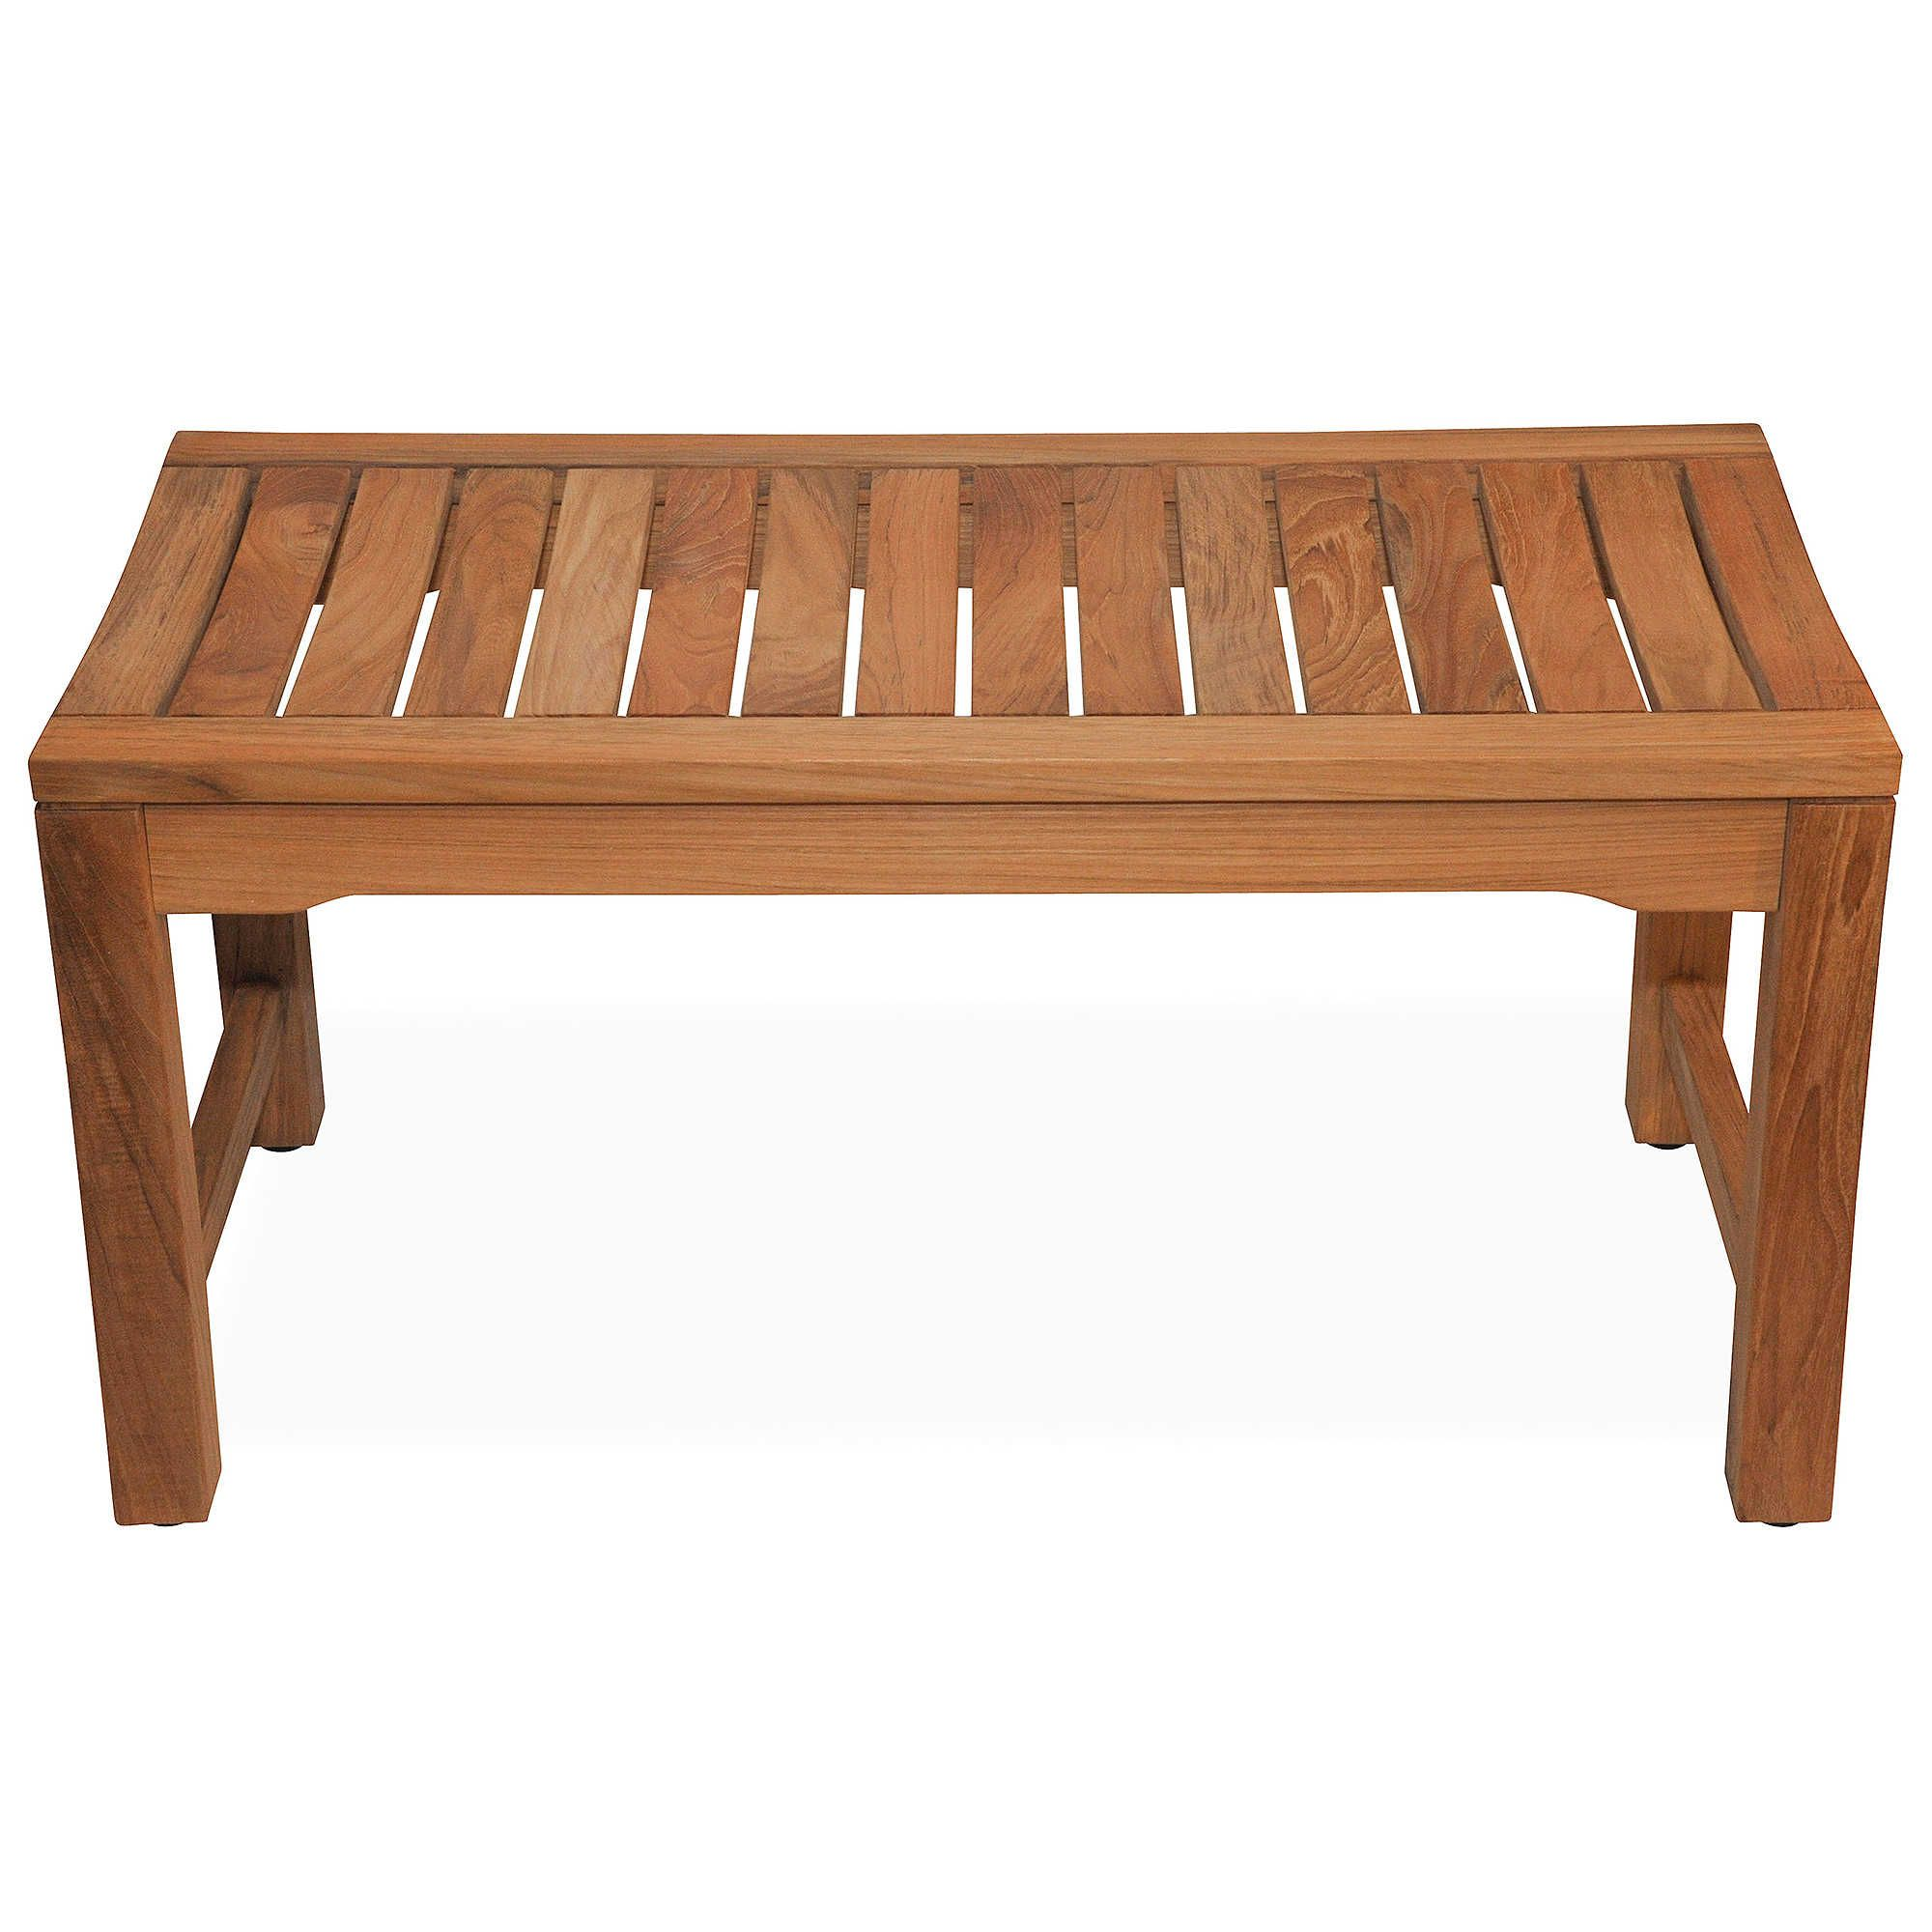 Teak Shower Bench for Your Breathtaking Furniture Ideas: Teak Shower ...